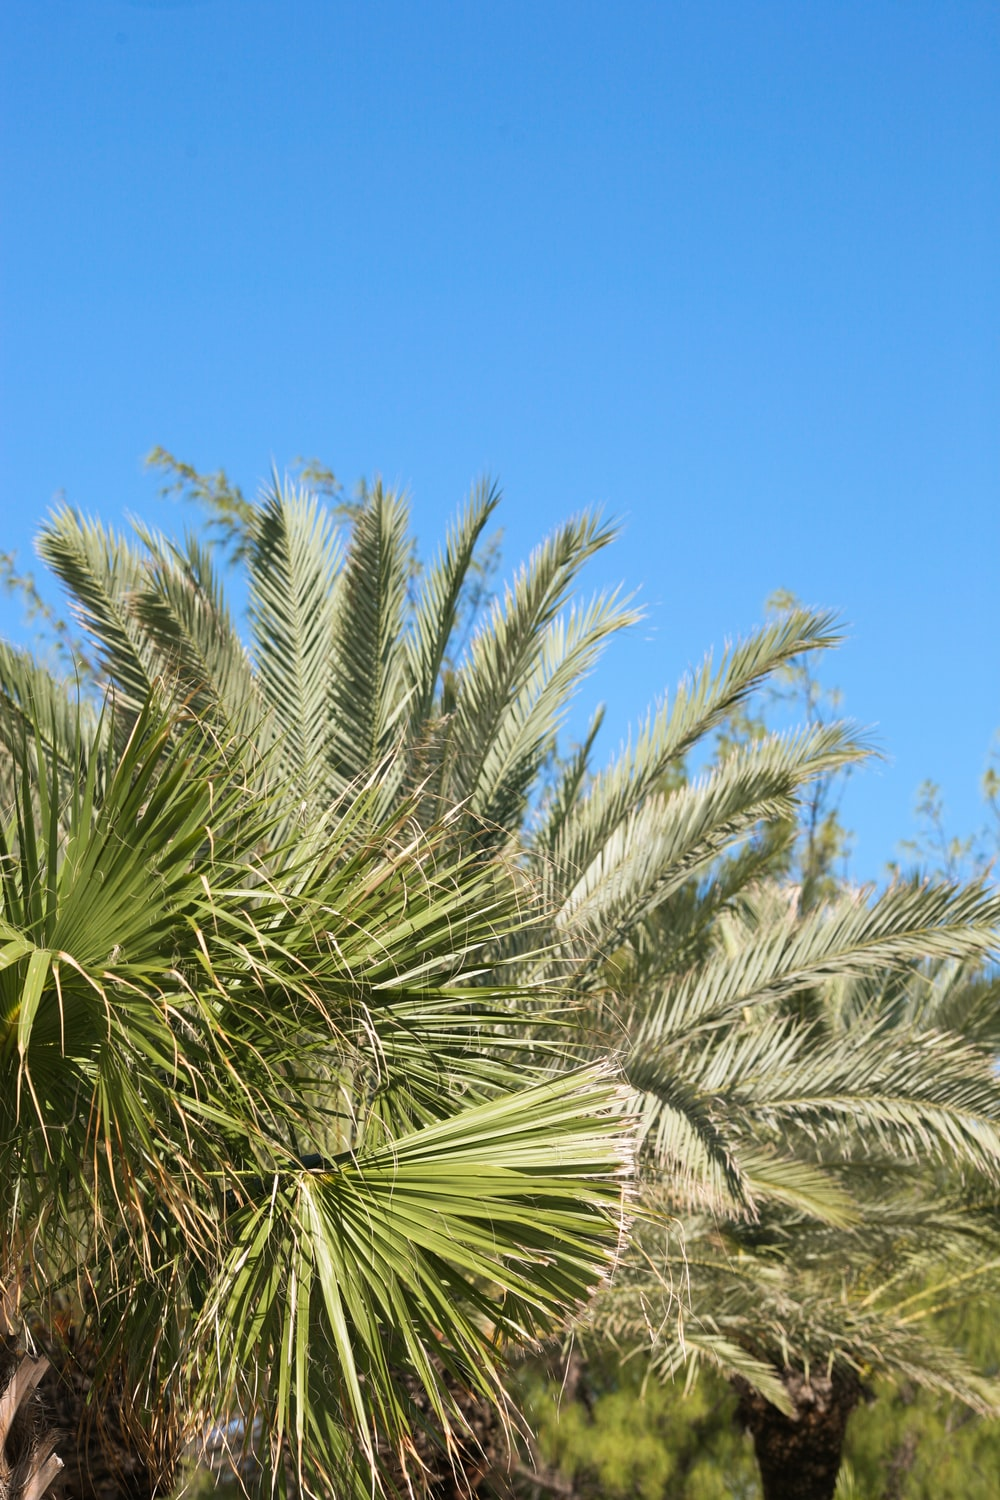 sago palm and fan palm trees